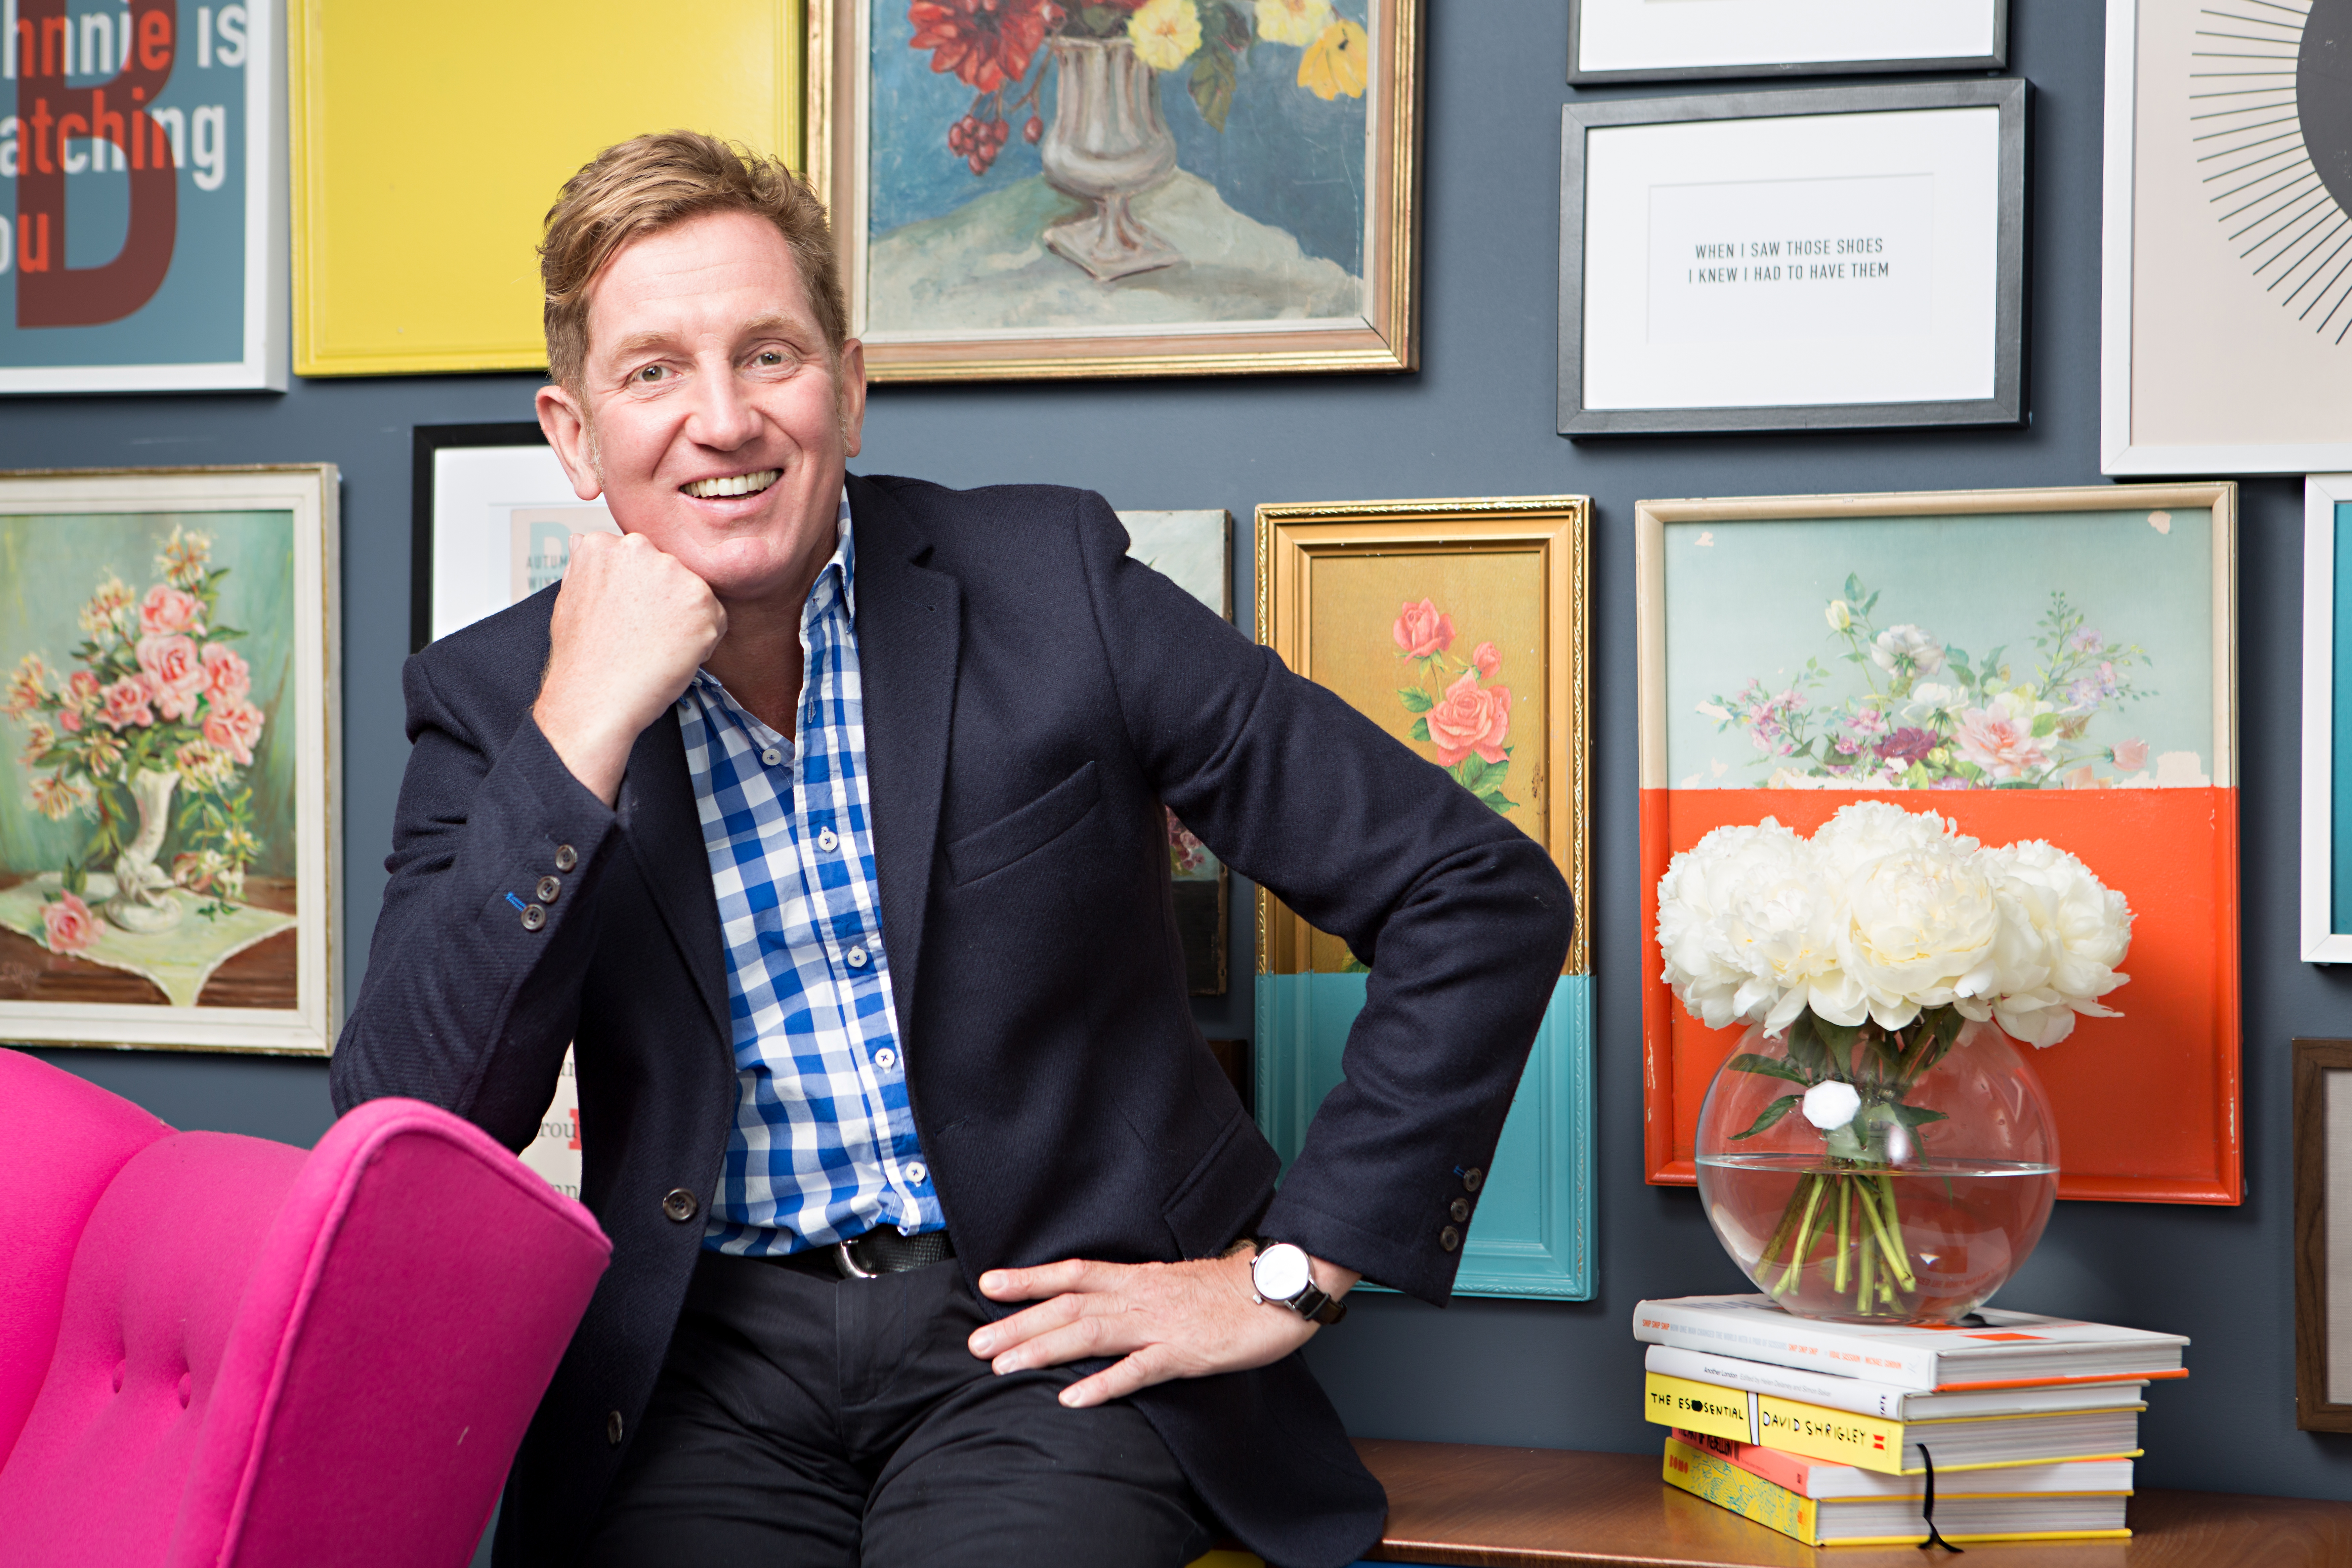 Johnnie Boden founded his eponymous business in 1991, and remains creative director, overseeing growth - and profitability.